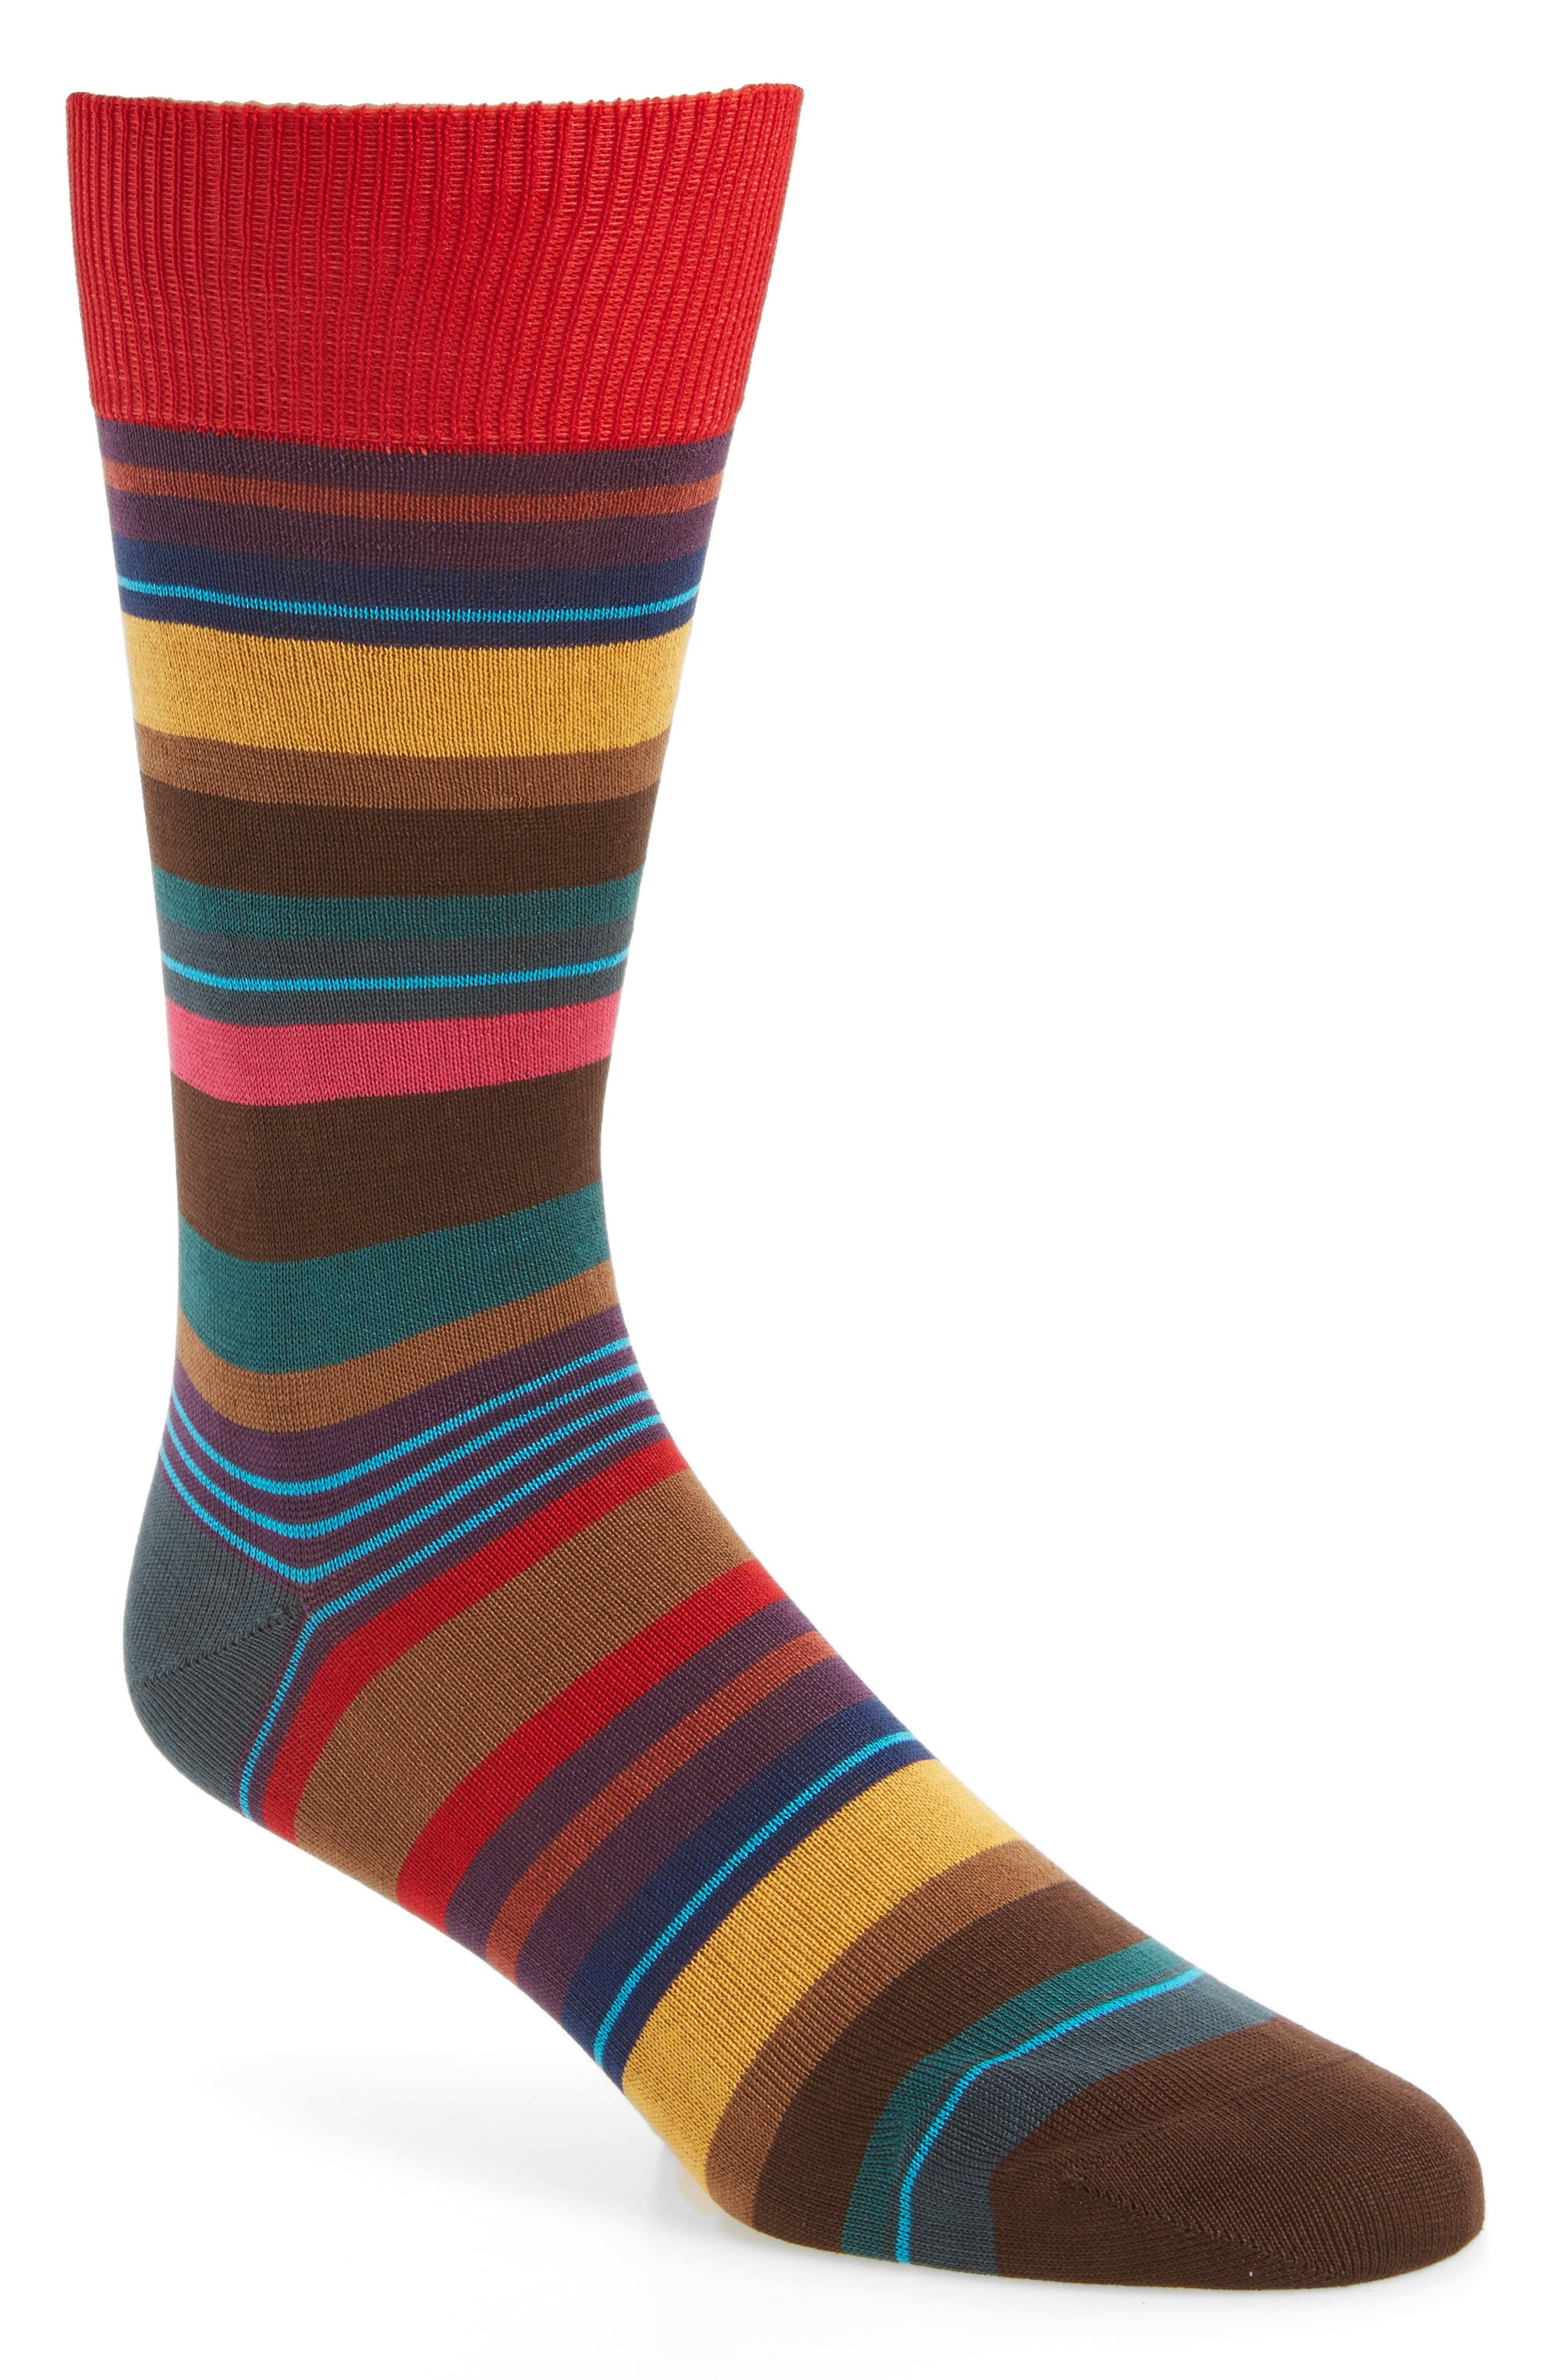 Alternate Image 1 Selected - Paul Smith Halentoe Stripe Socks